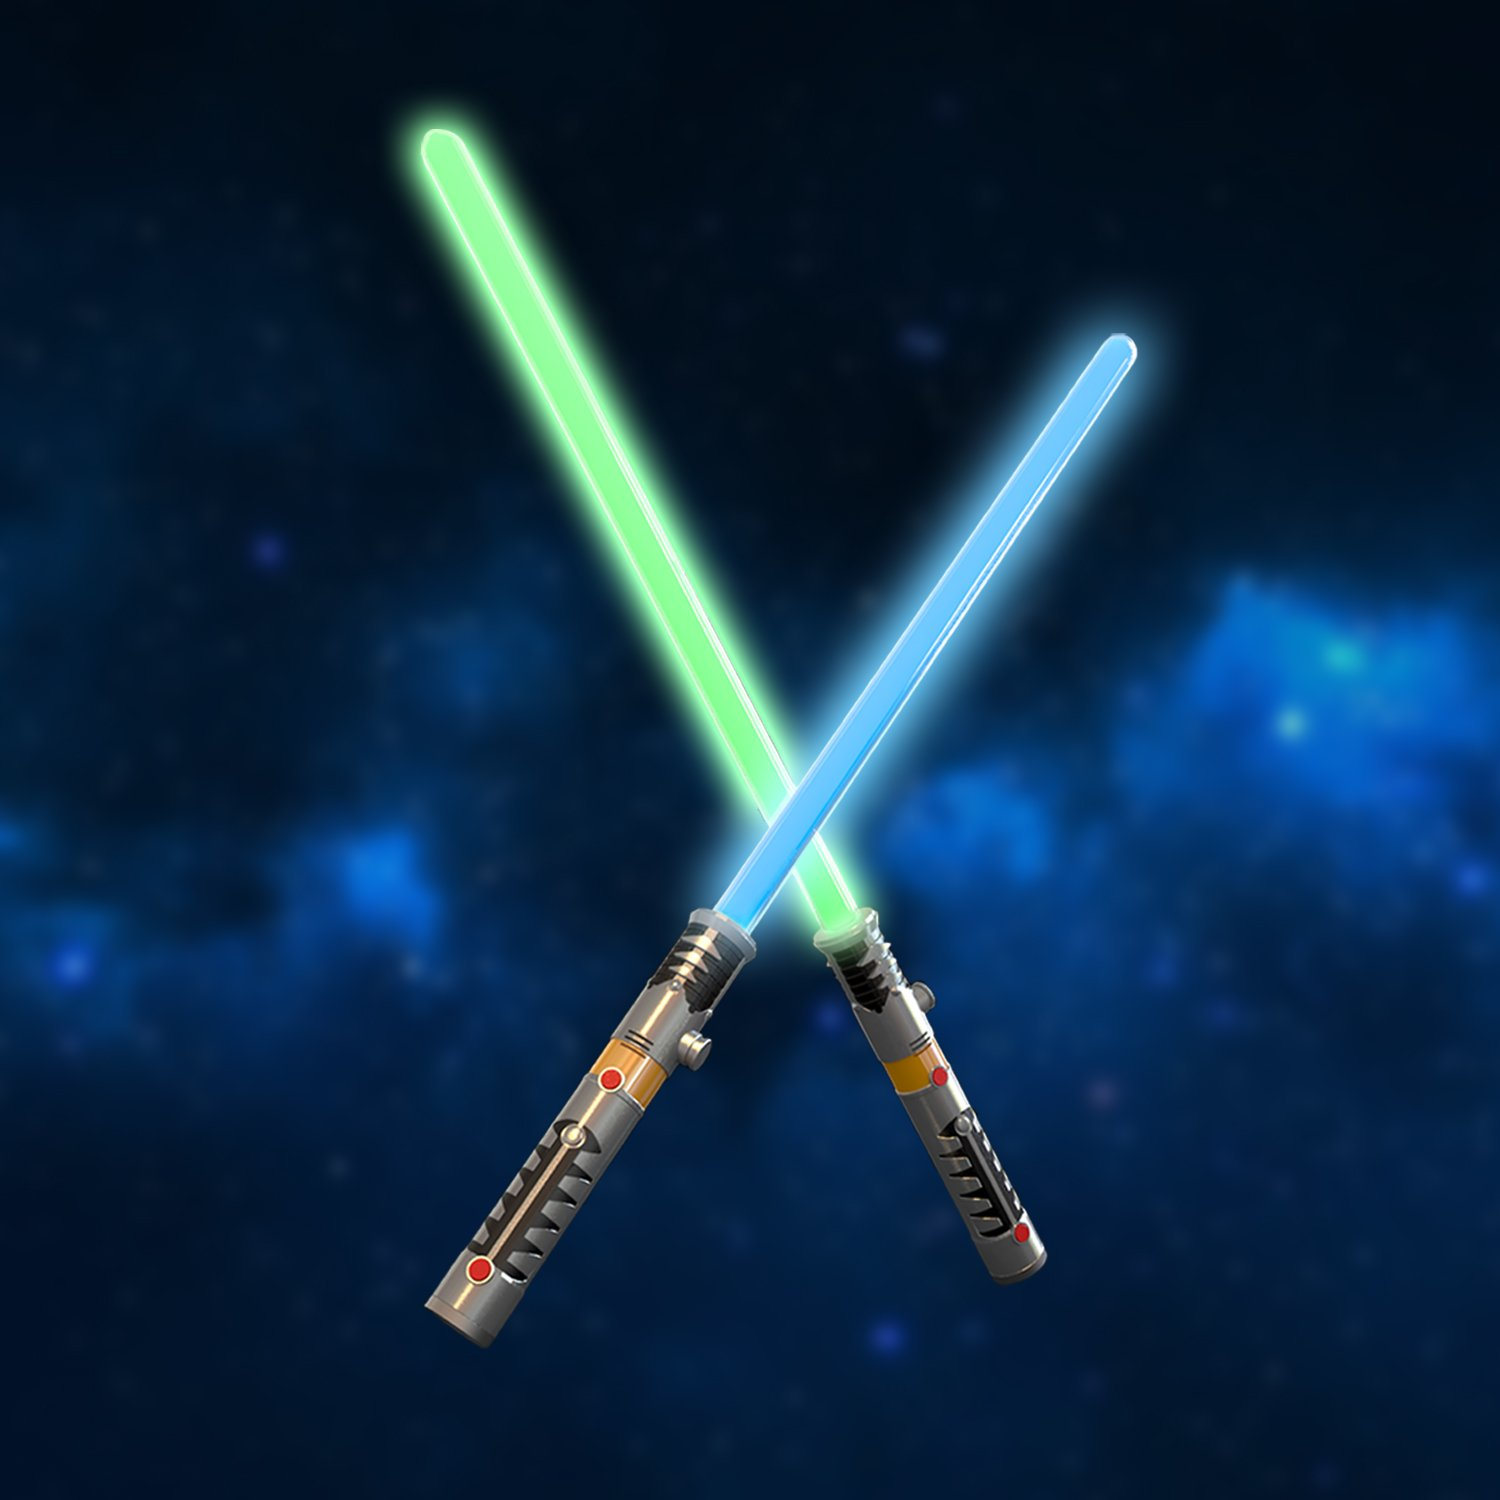 FUN LITTLE TOYS LED Light Saber Laser Sword FX Lightsaber Fighters Galaxy Warriors, 2 in 1 with Light and Sound Effect